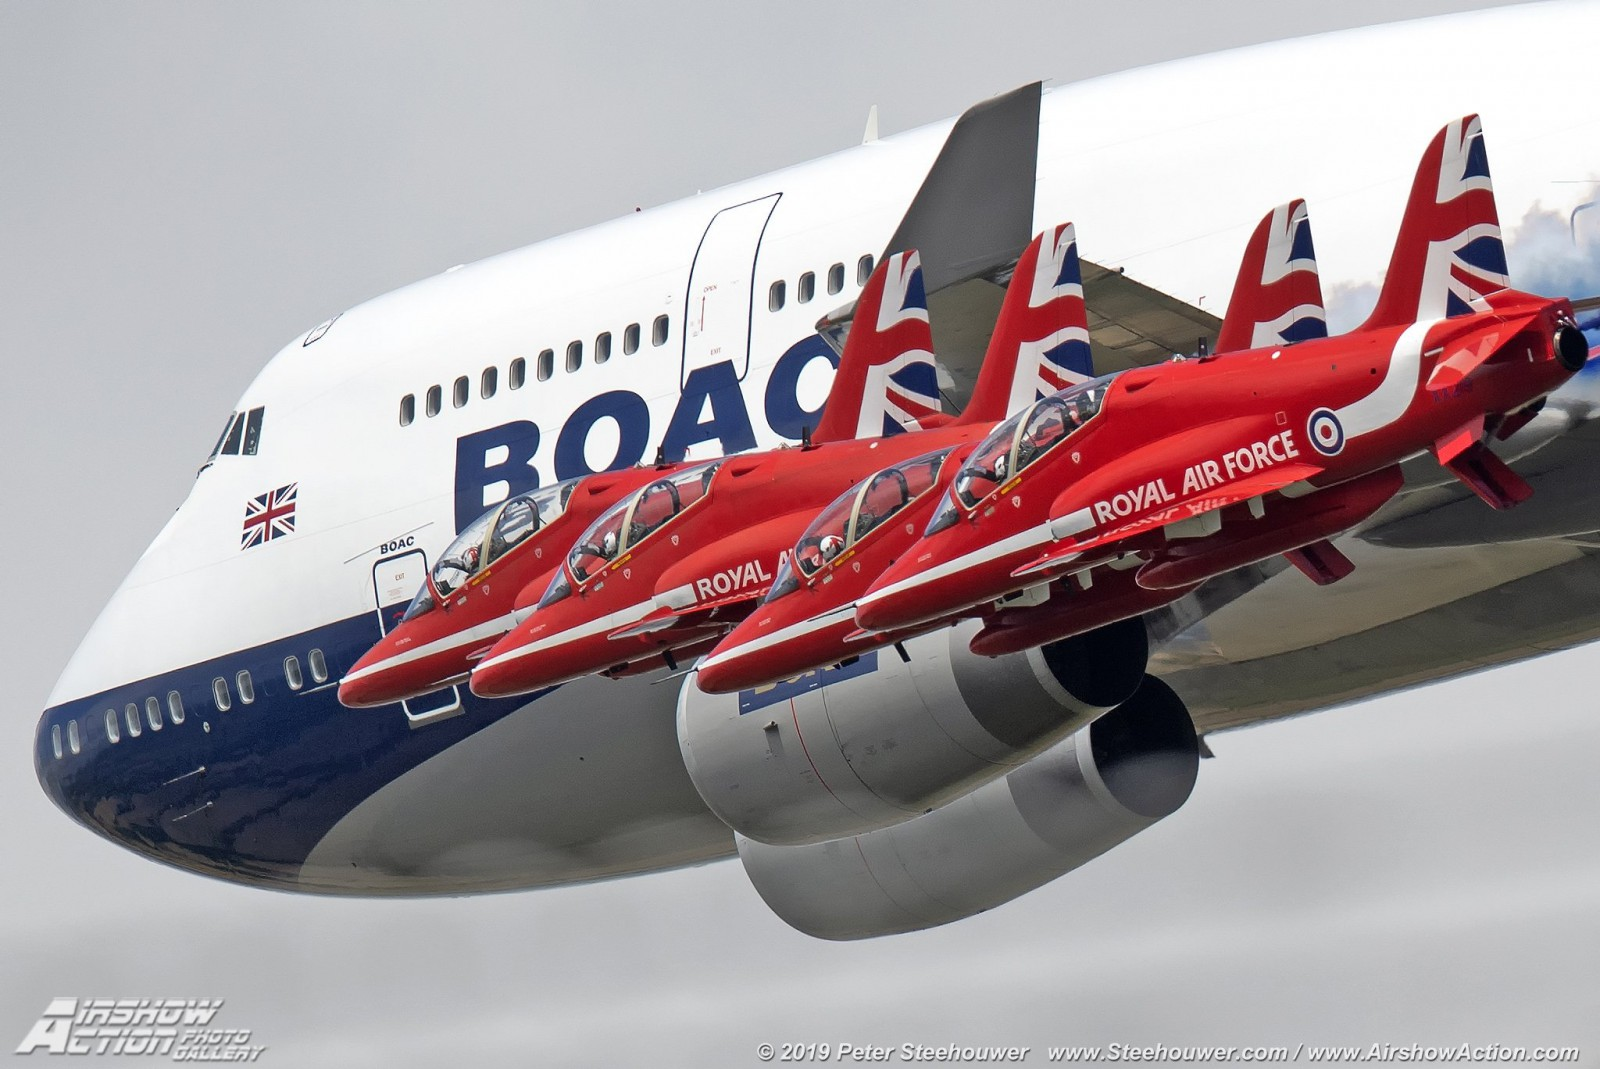 Striking pictures of British Airways' BOAC 747 and the Red